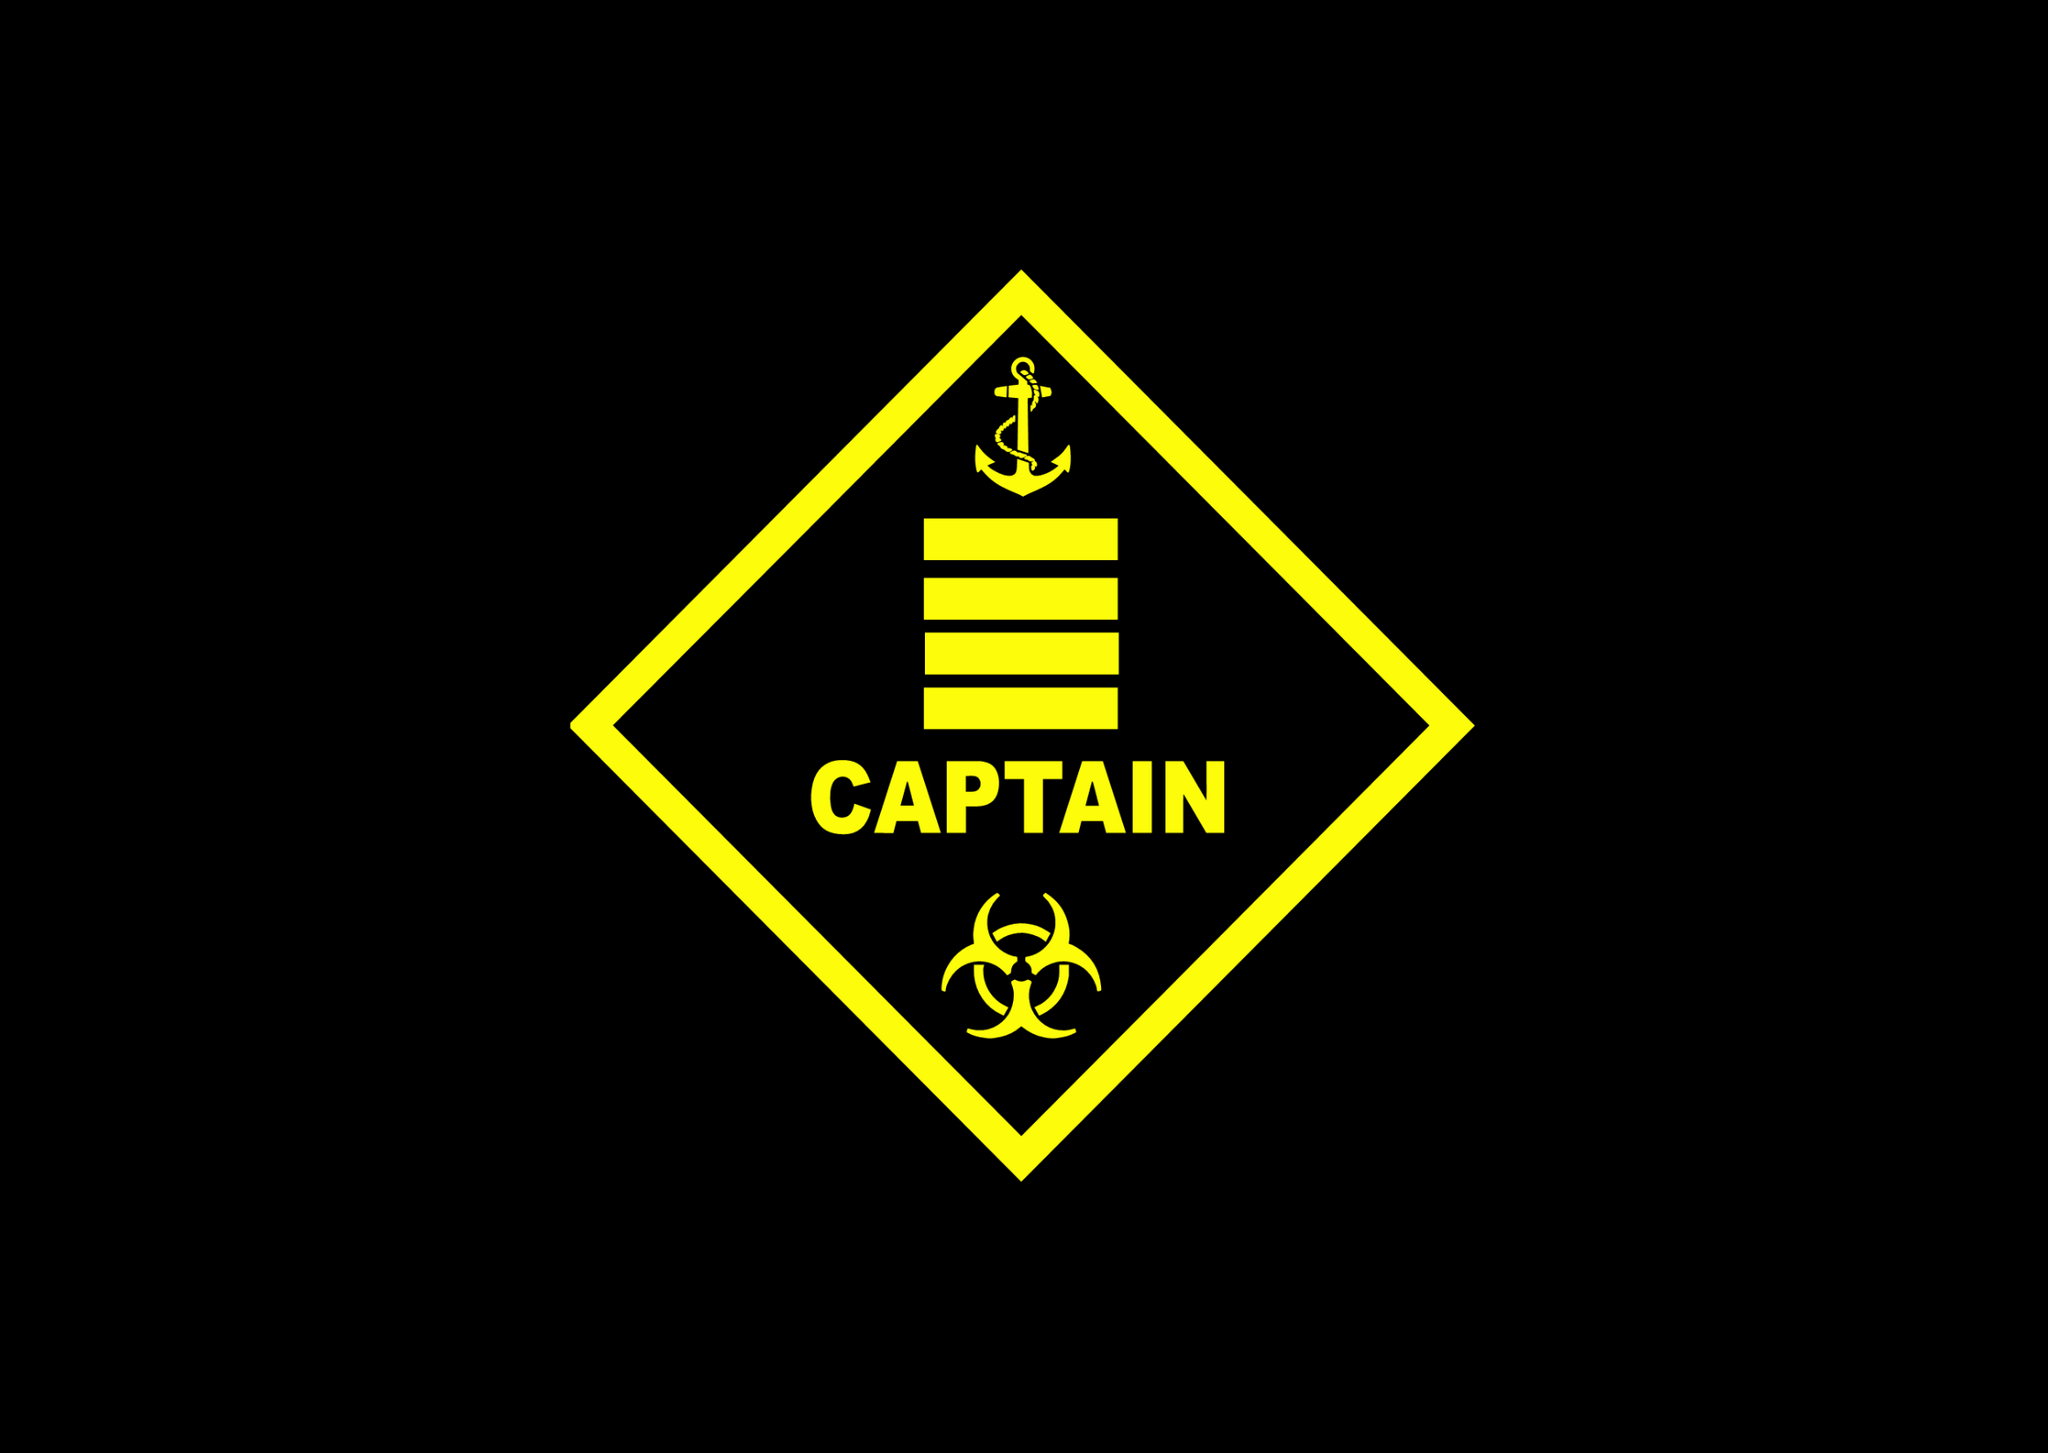 Captain Warning Plaque